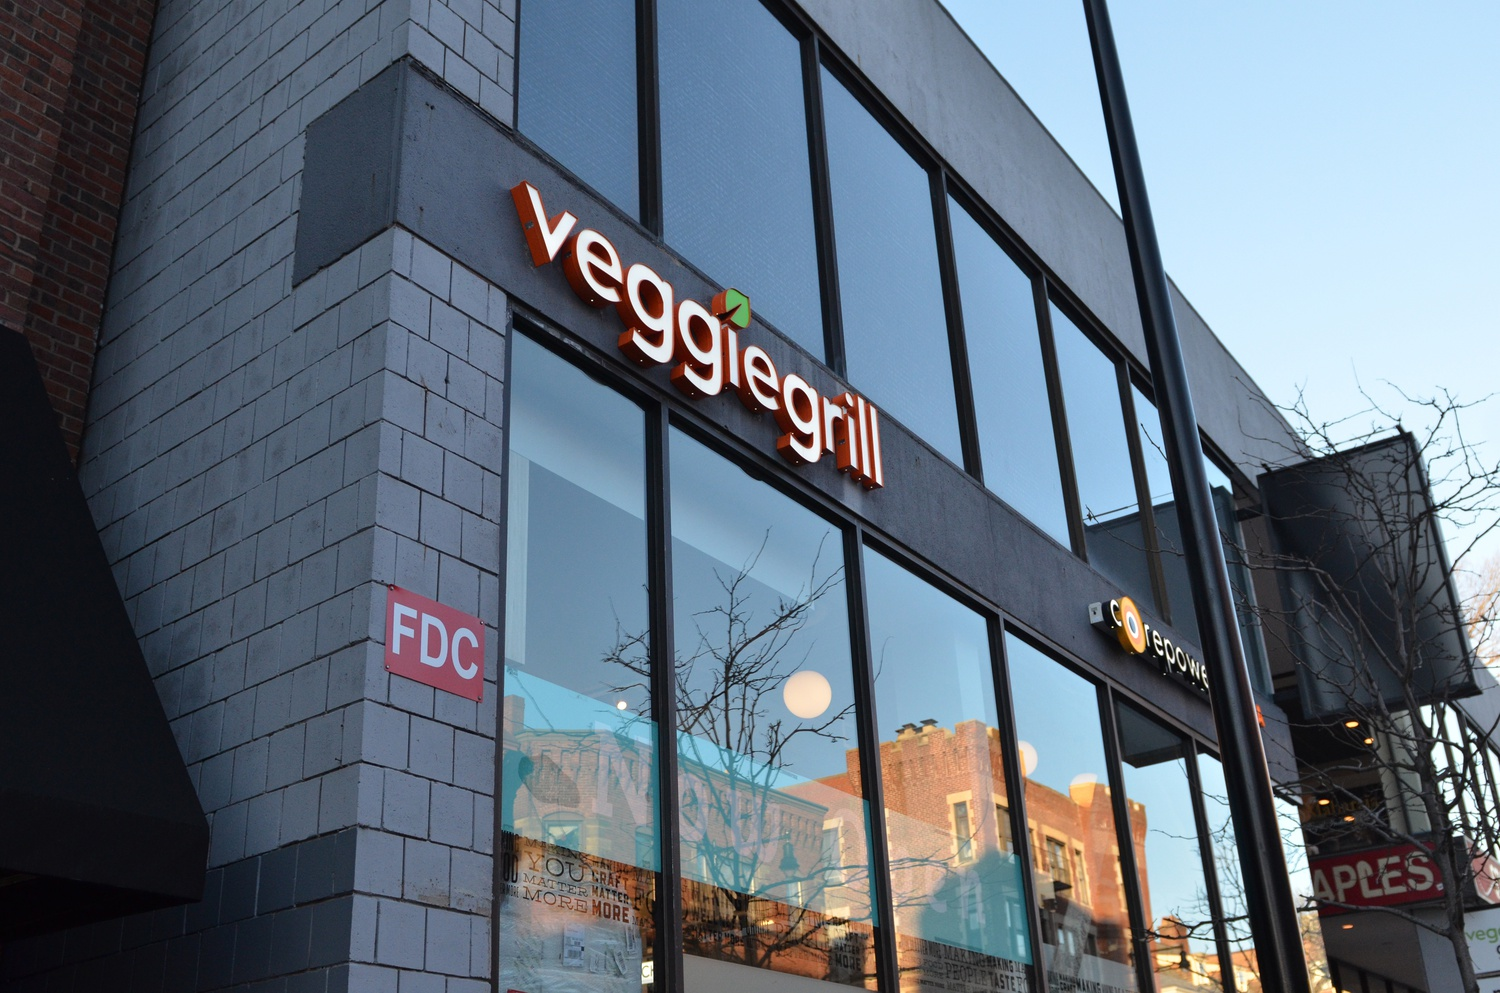 Veggie Grill is a vegetarian restaurant chain based in California, which seeks to bring a new take on comfort food to Harvard Square.